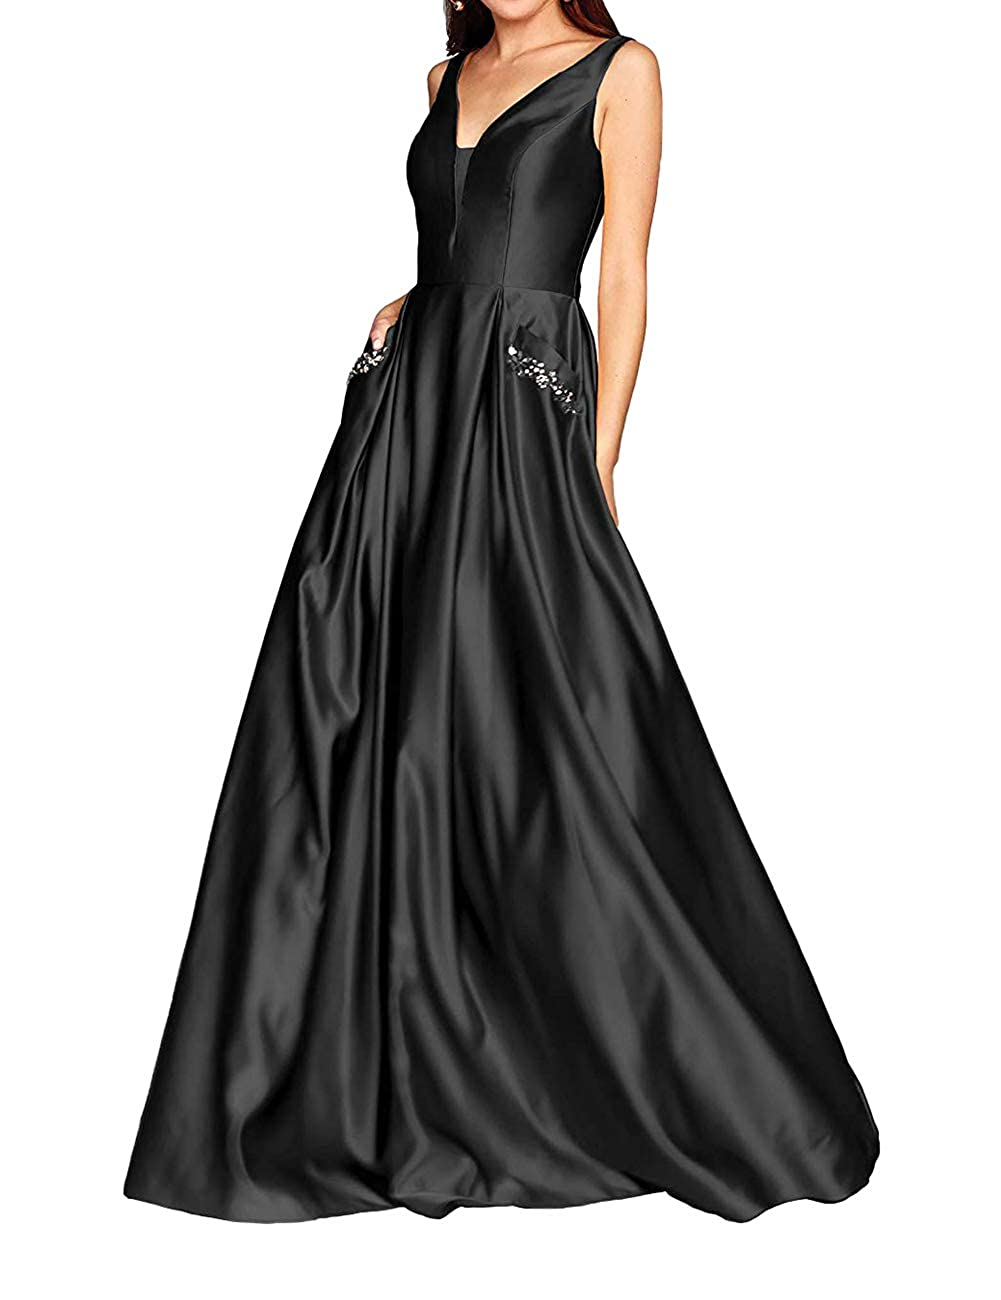 Black JAEDEN Prom Dresses Long Evening Gowns Formal V Neck Prom Dress Sleeveless Evening Dresses Party Gown with Pocket